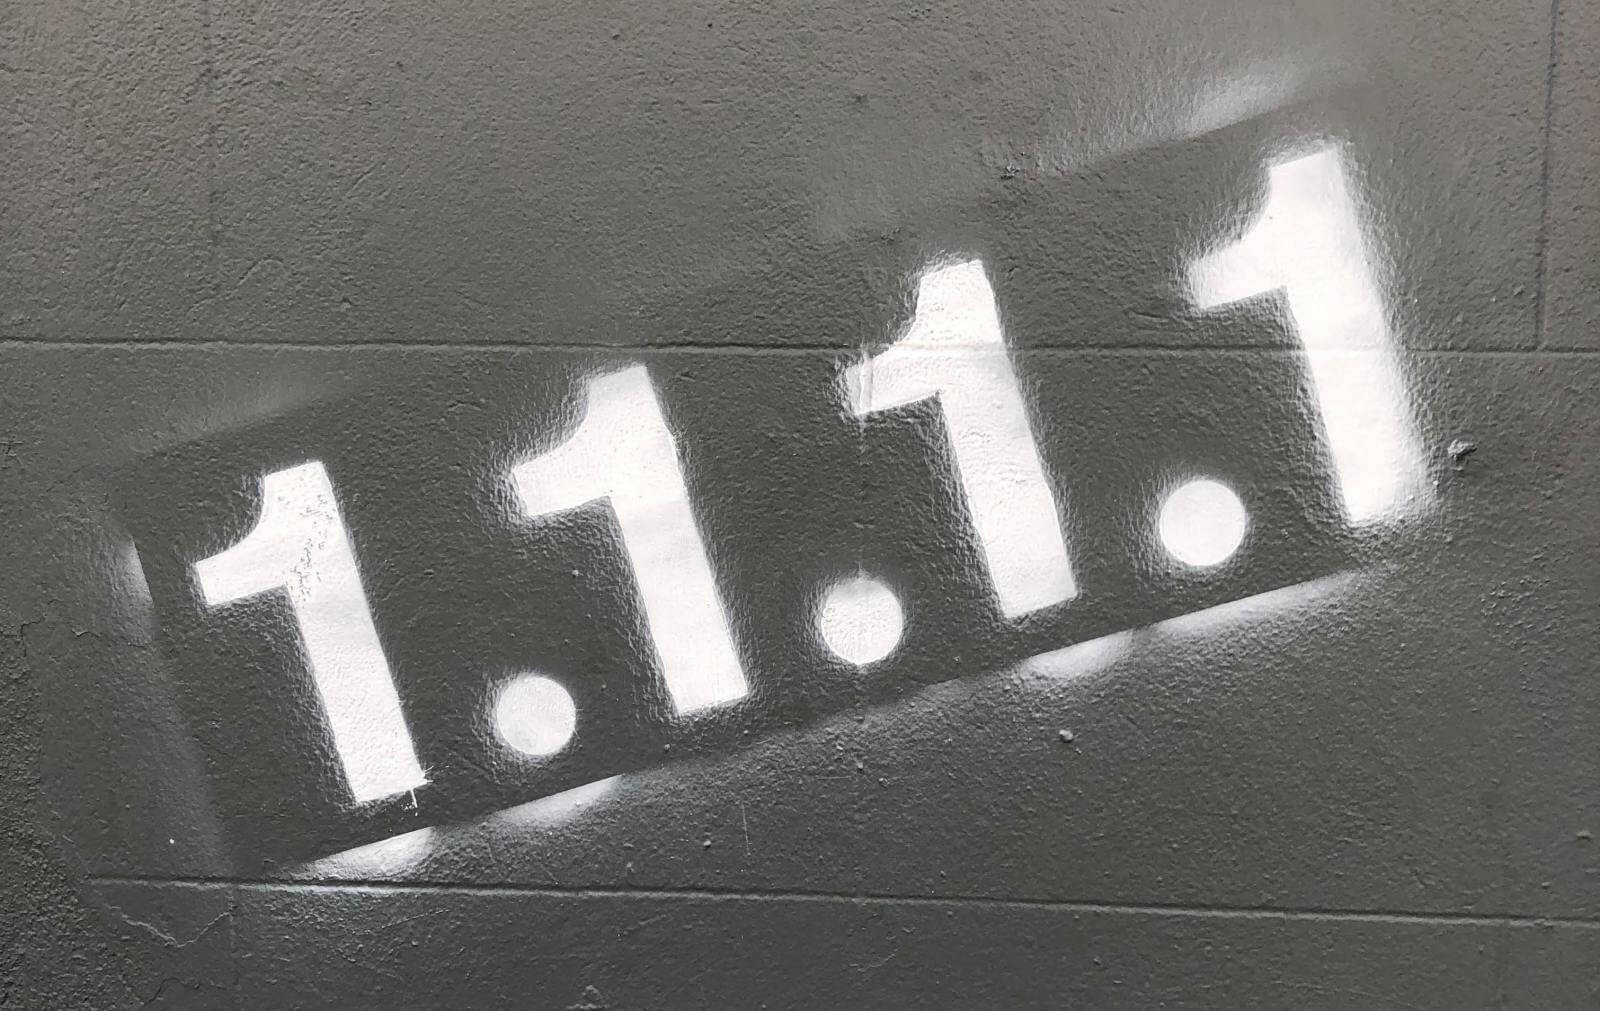 Cloudflare's 1.1.1.1 DNS service comes to mobile, offering faster, more private web browsing